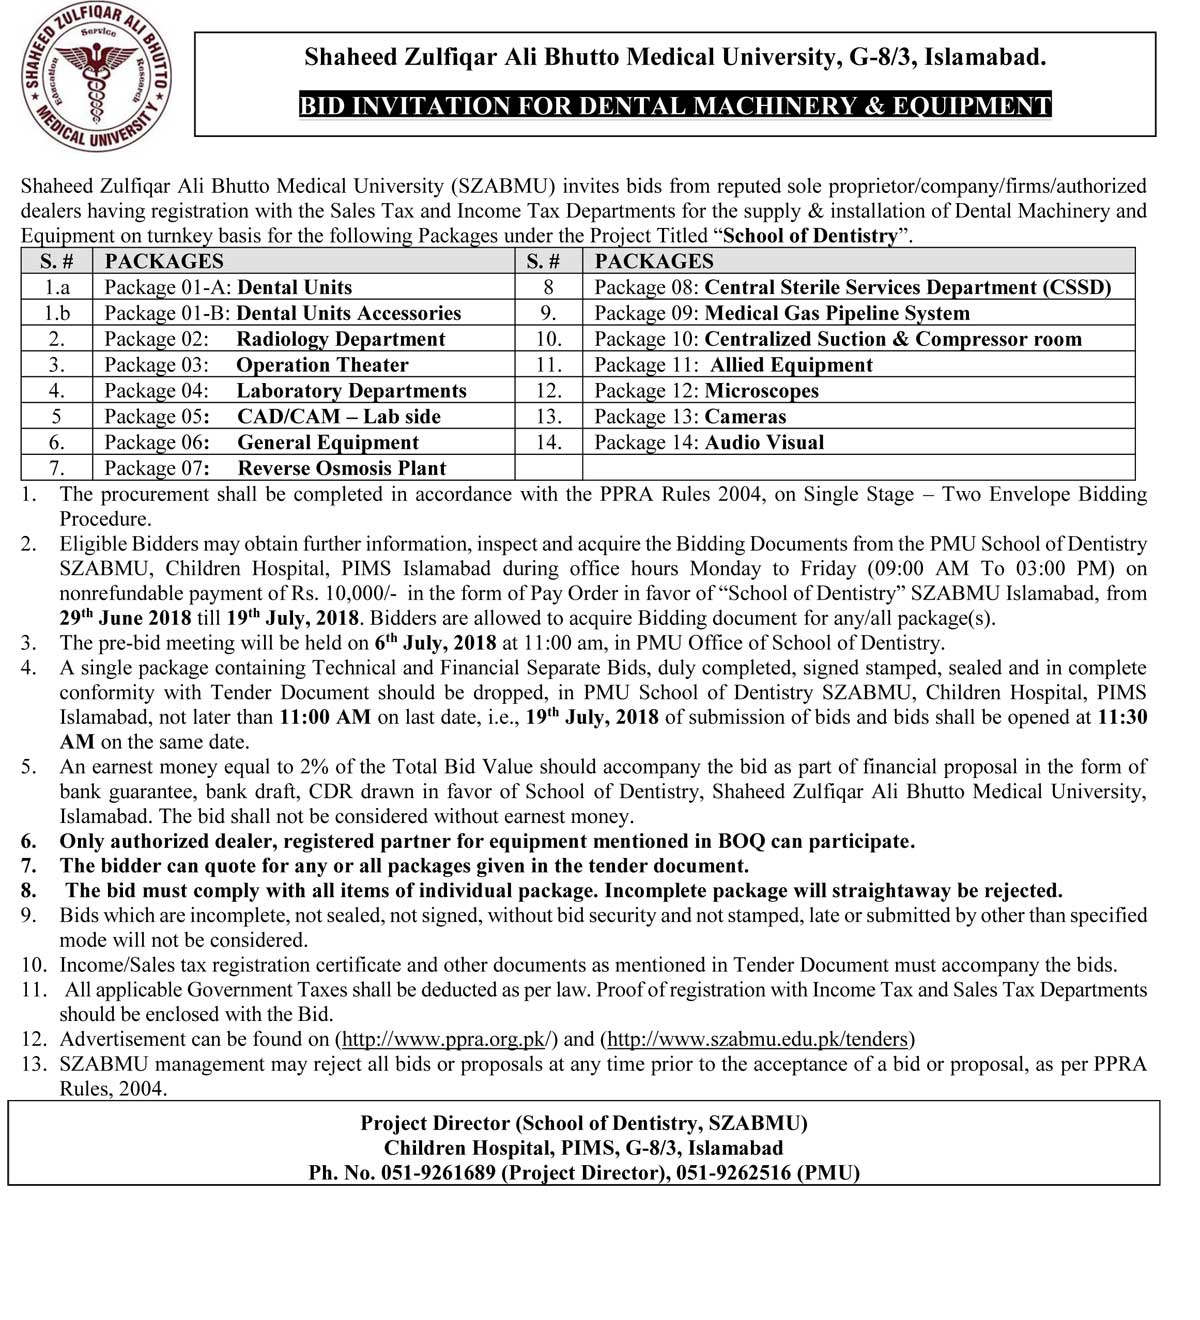 Tender Notice - Bid Invitation For Dental Machinery & Equipment